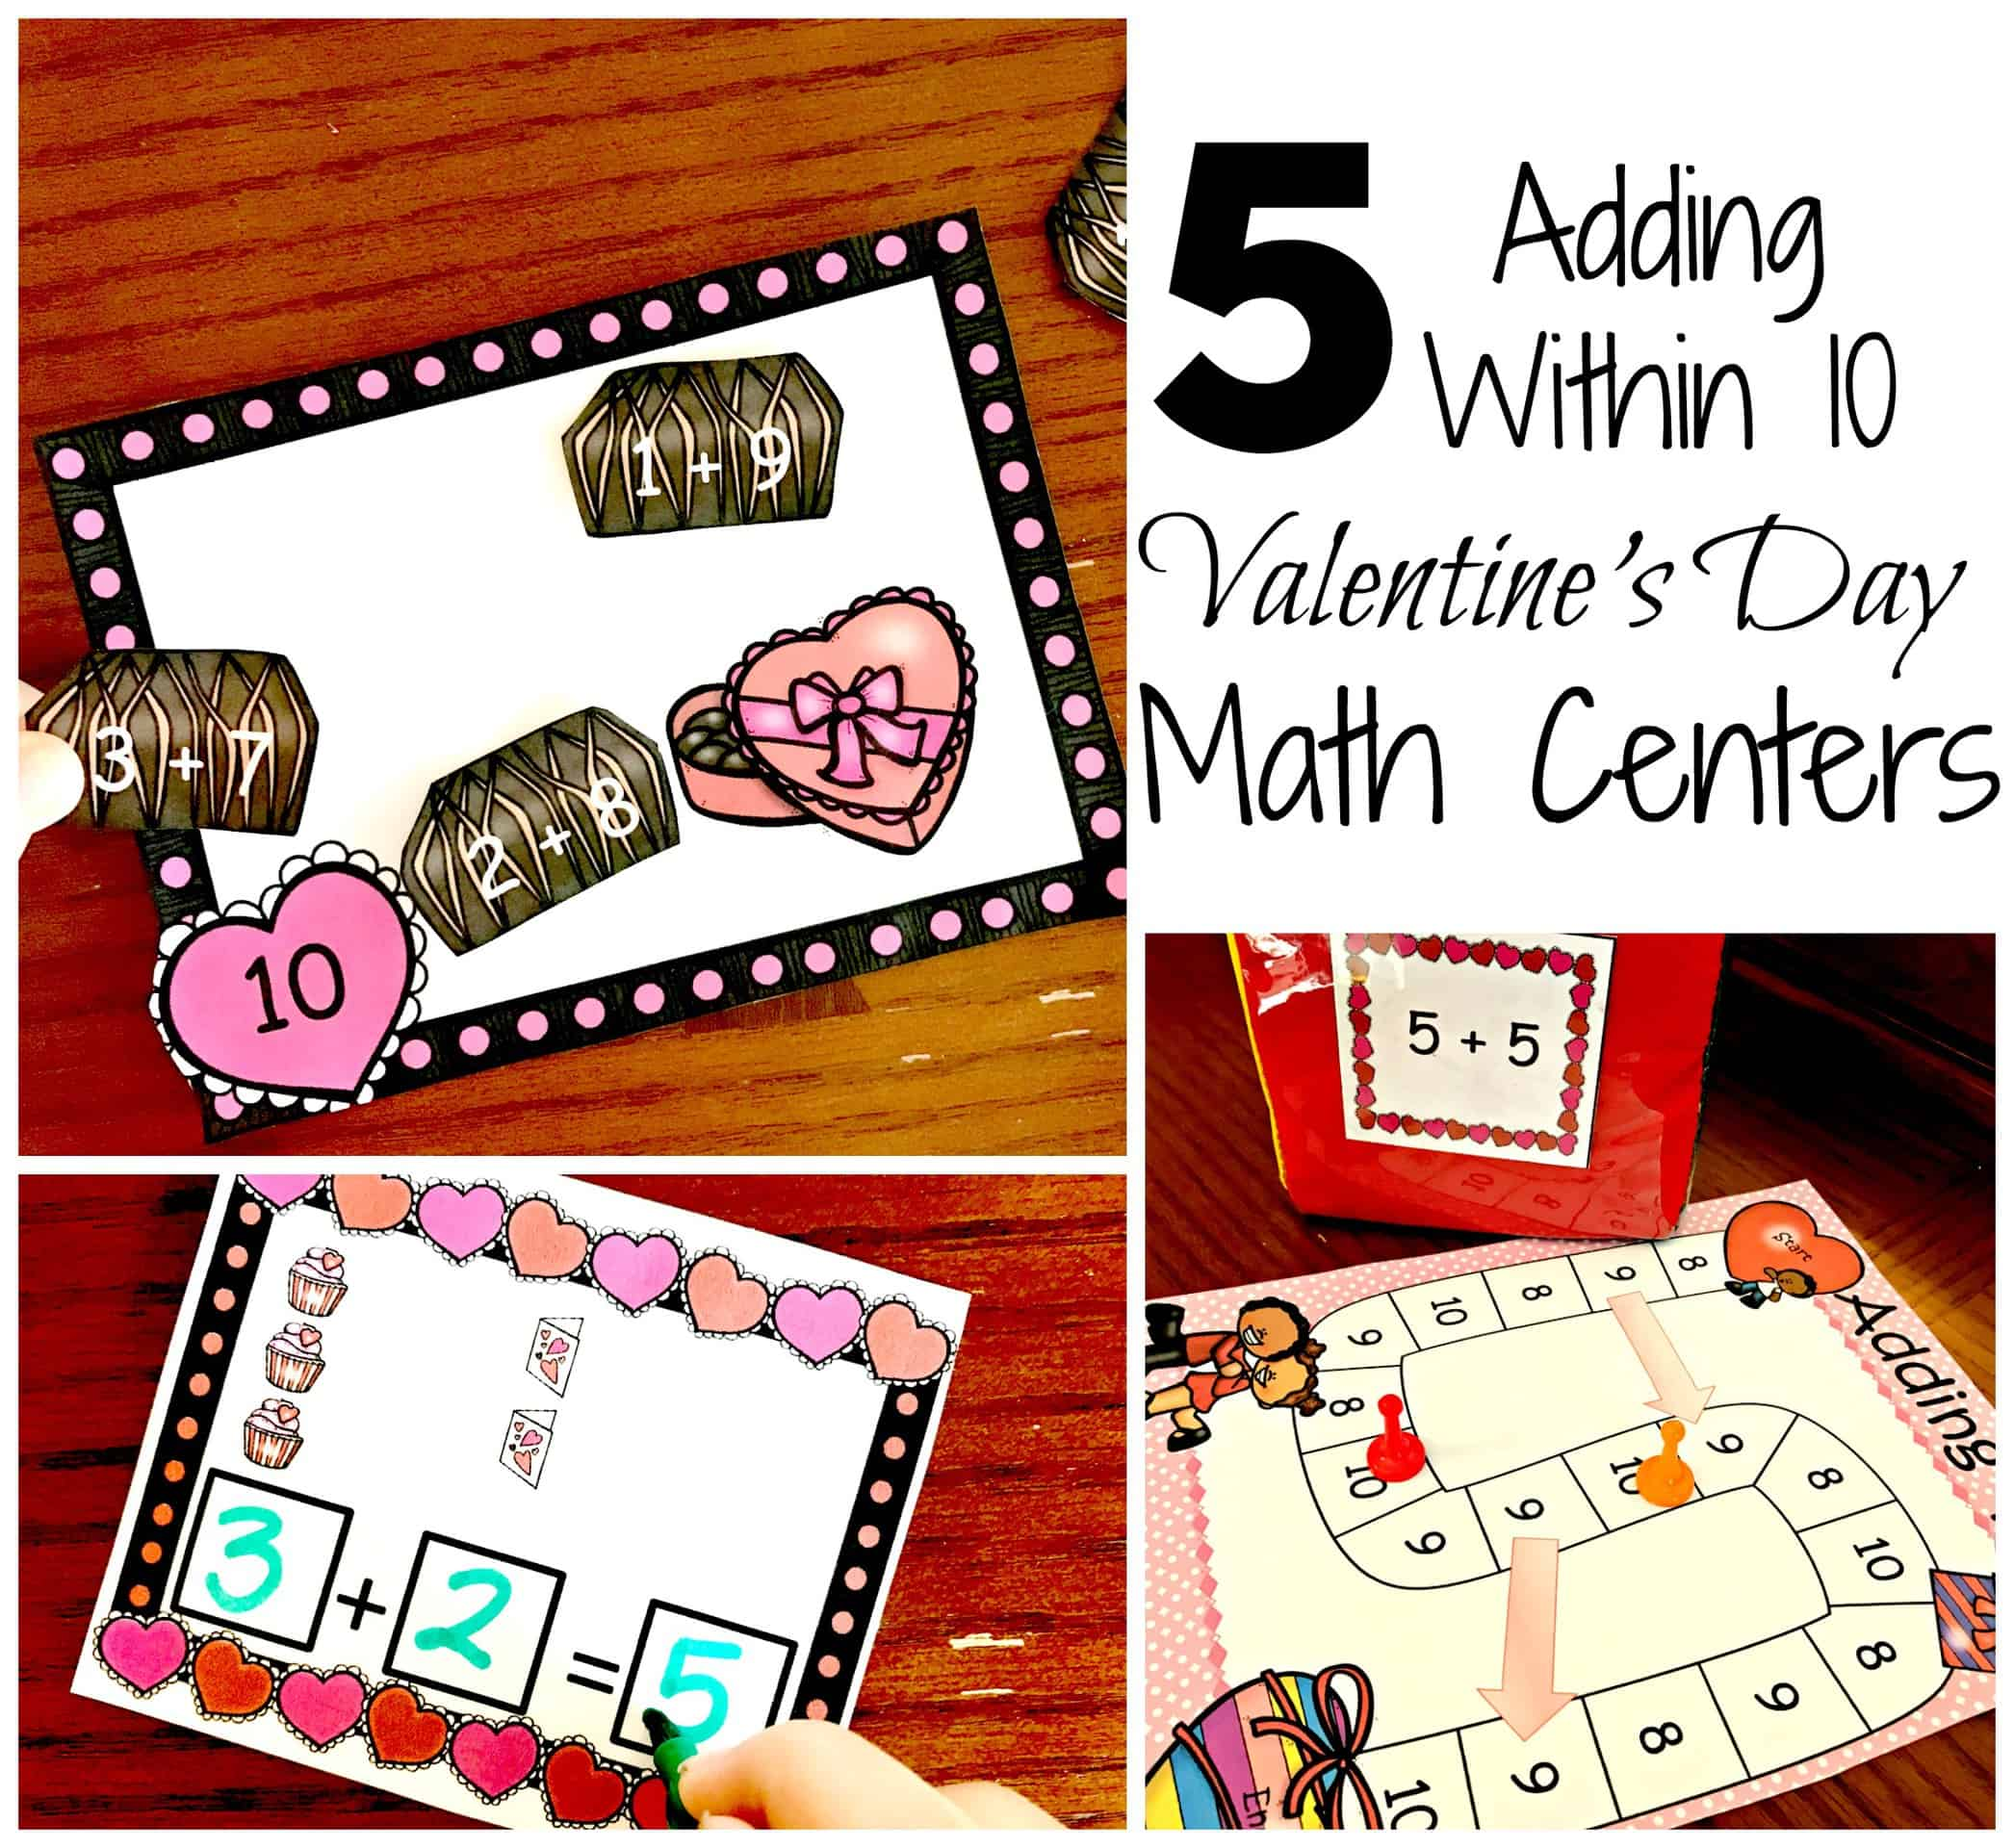 5 Valentine S Day Math Centers For Adding Within 10